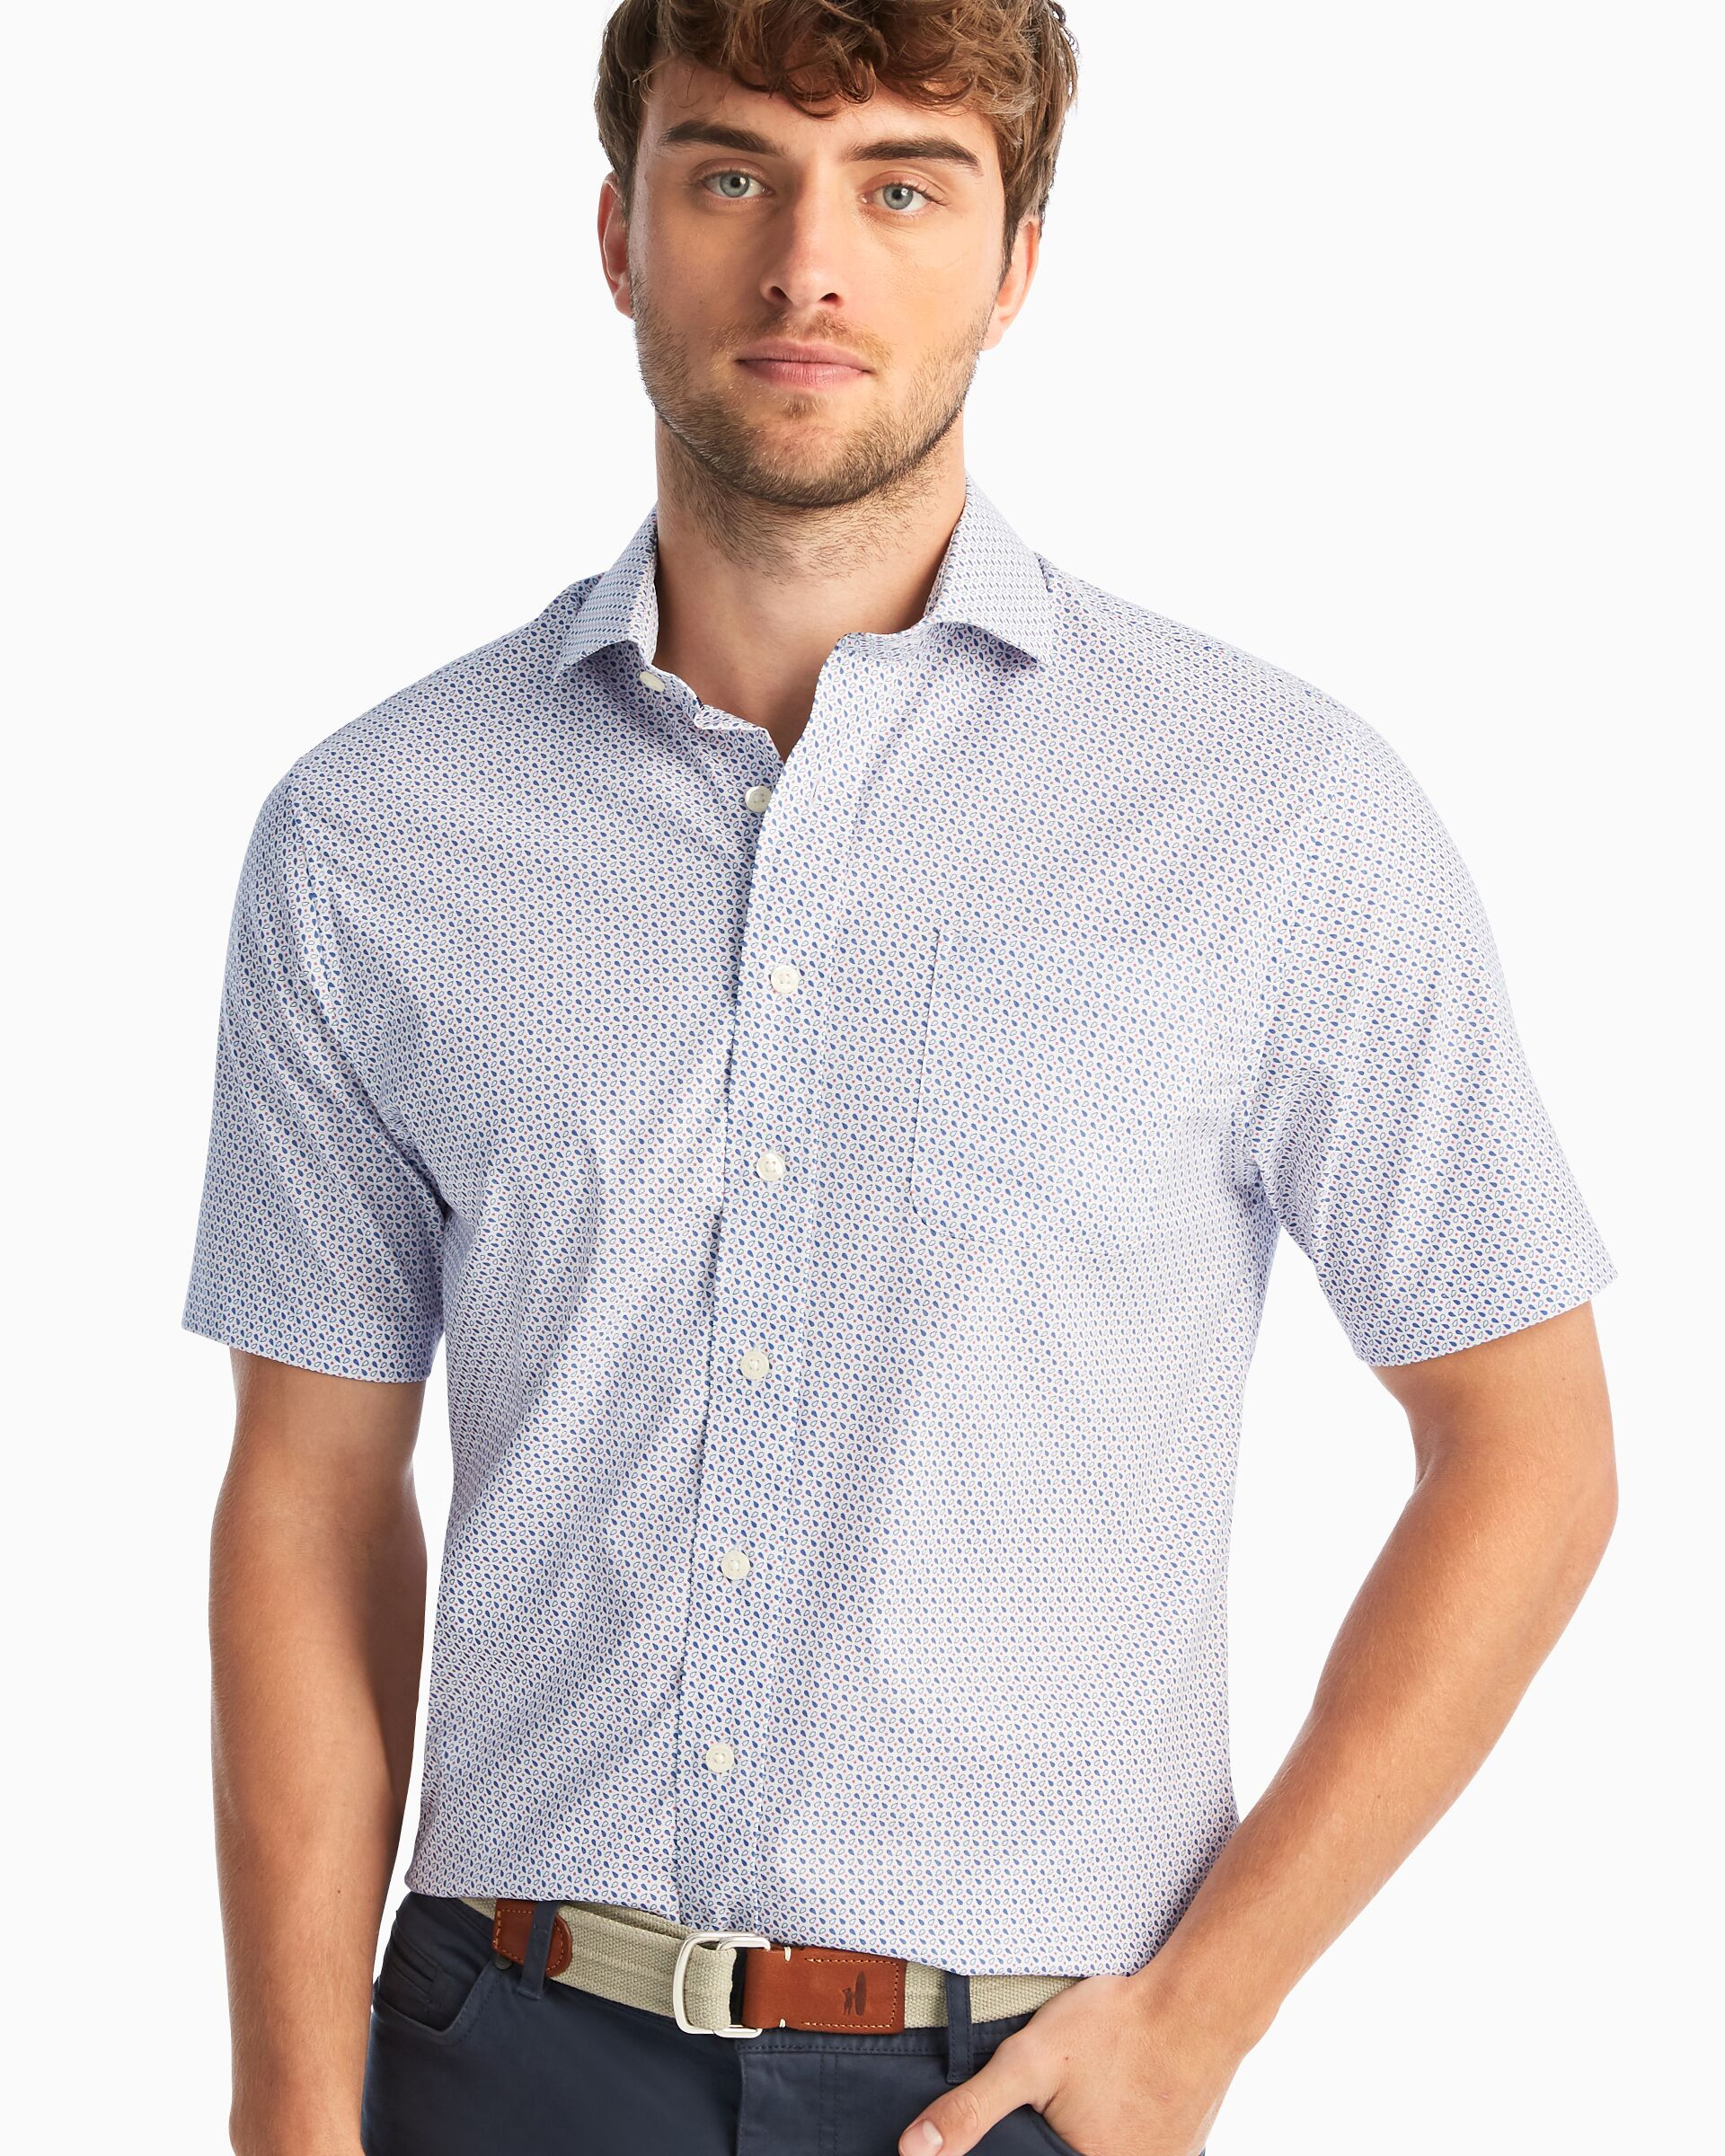 Hines Printed Prep-Formance Short Sleeve Button Down Shirt (White)